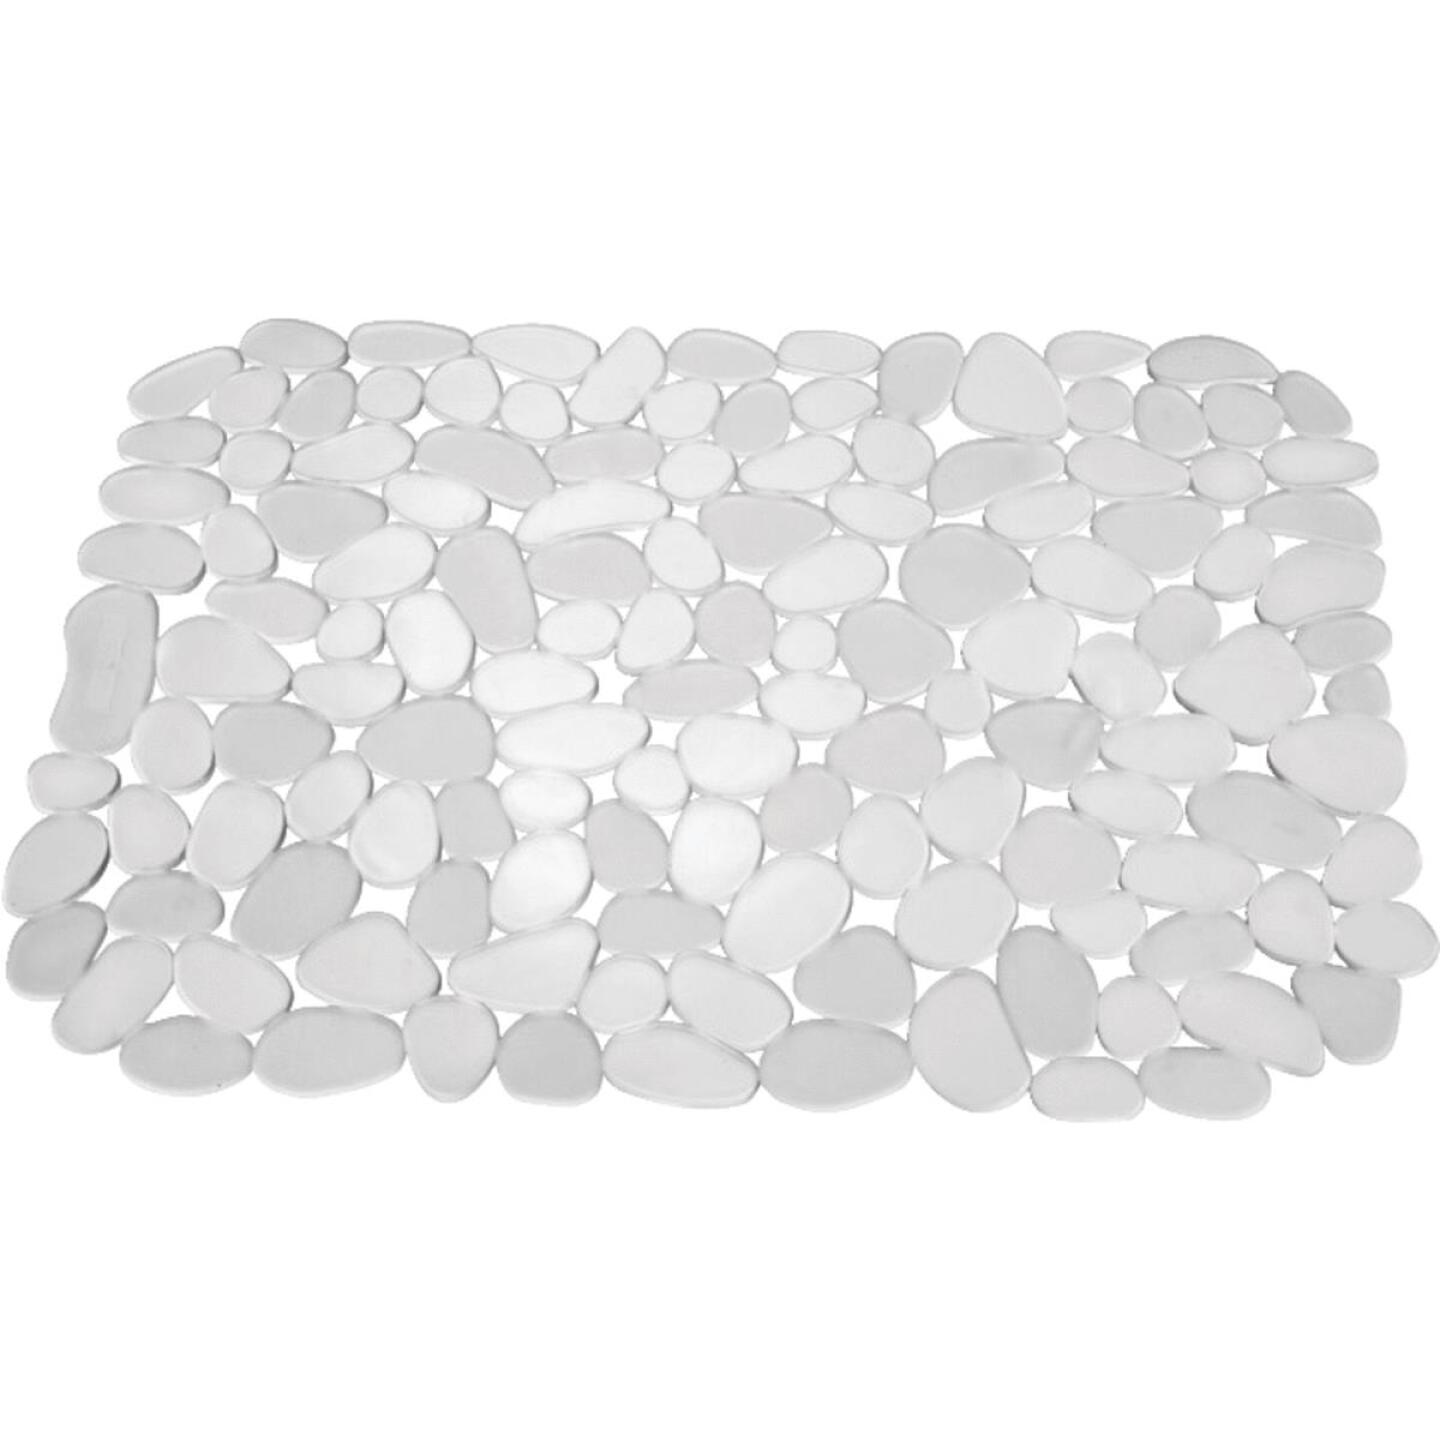 InterDesign Pebblz 10.5 In. x 12.25 In. Clear Sink Mat Image 1